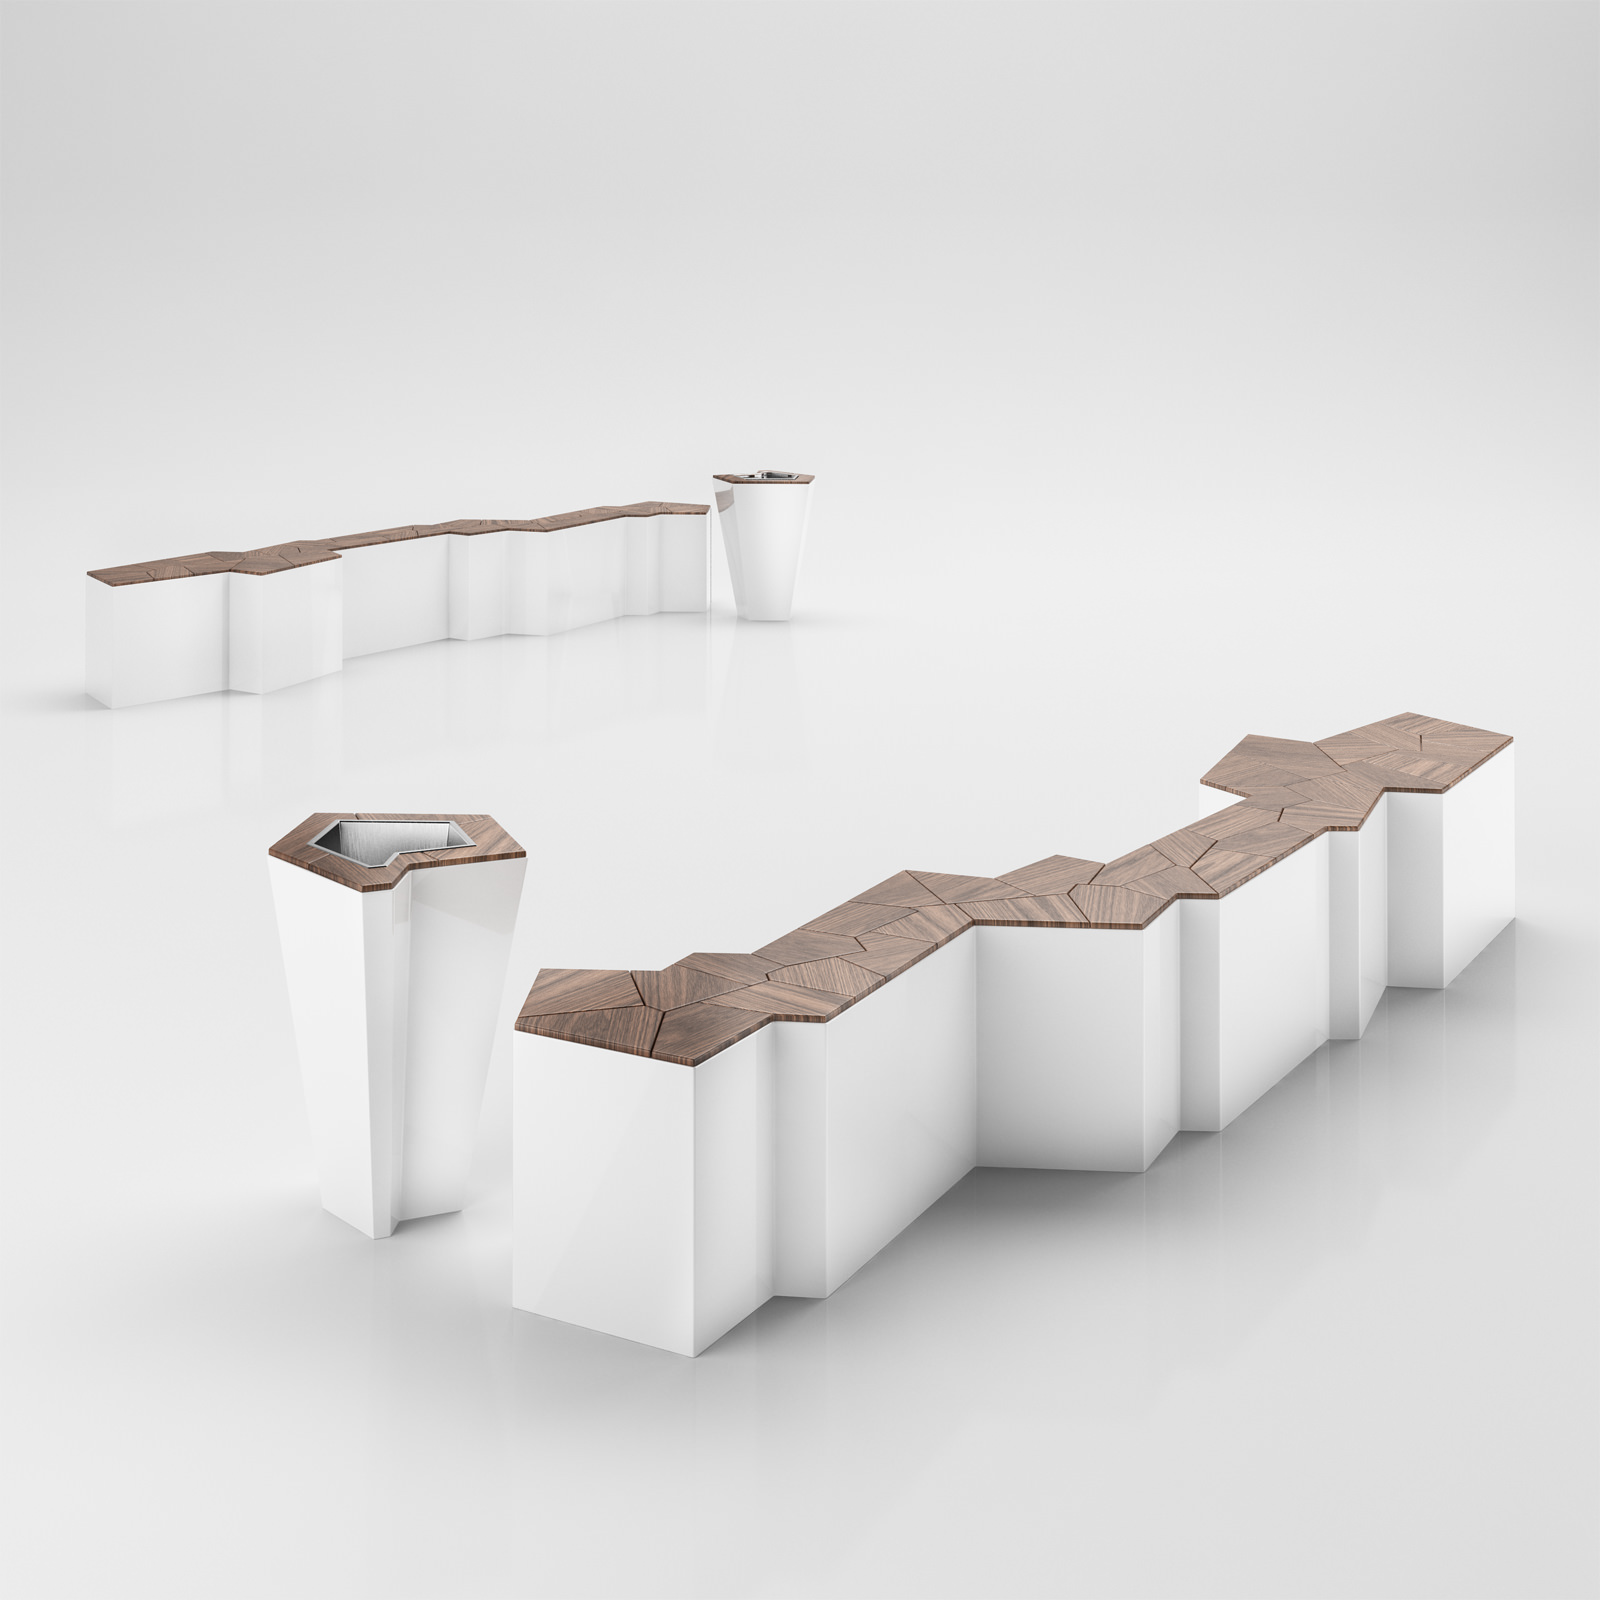 Modern Art Style Bench With Matched Trash Bin 3d Model Max Obj 3ds C4d